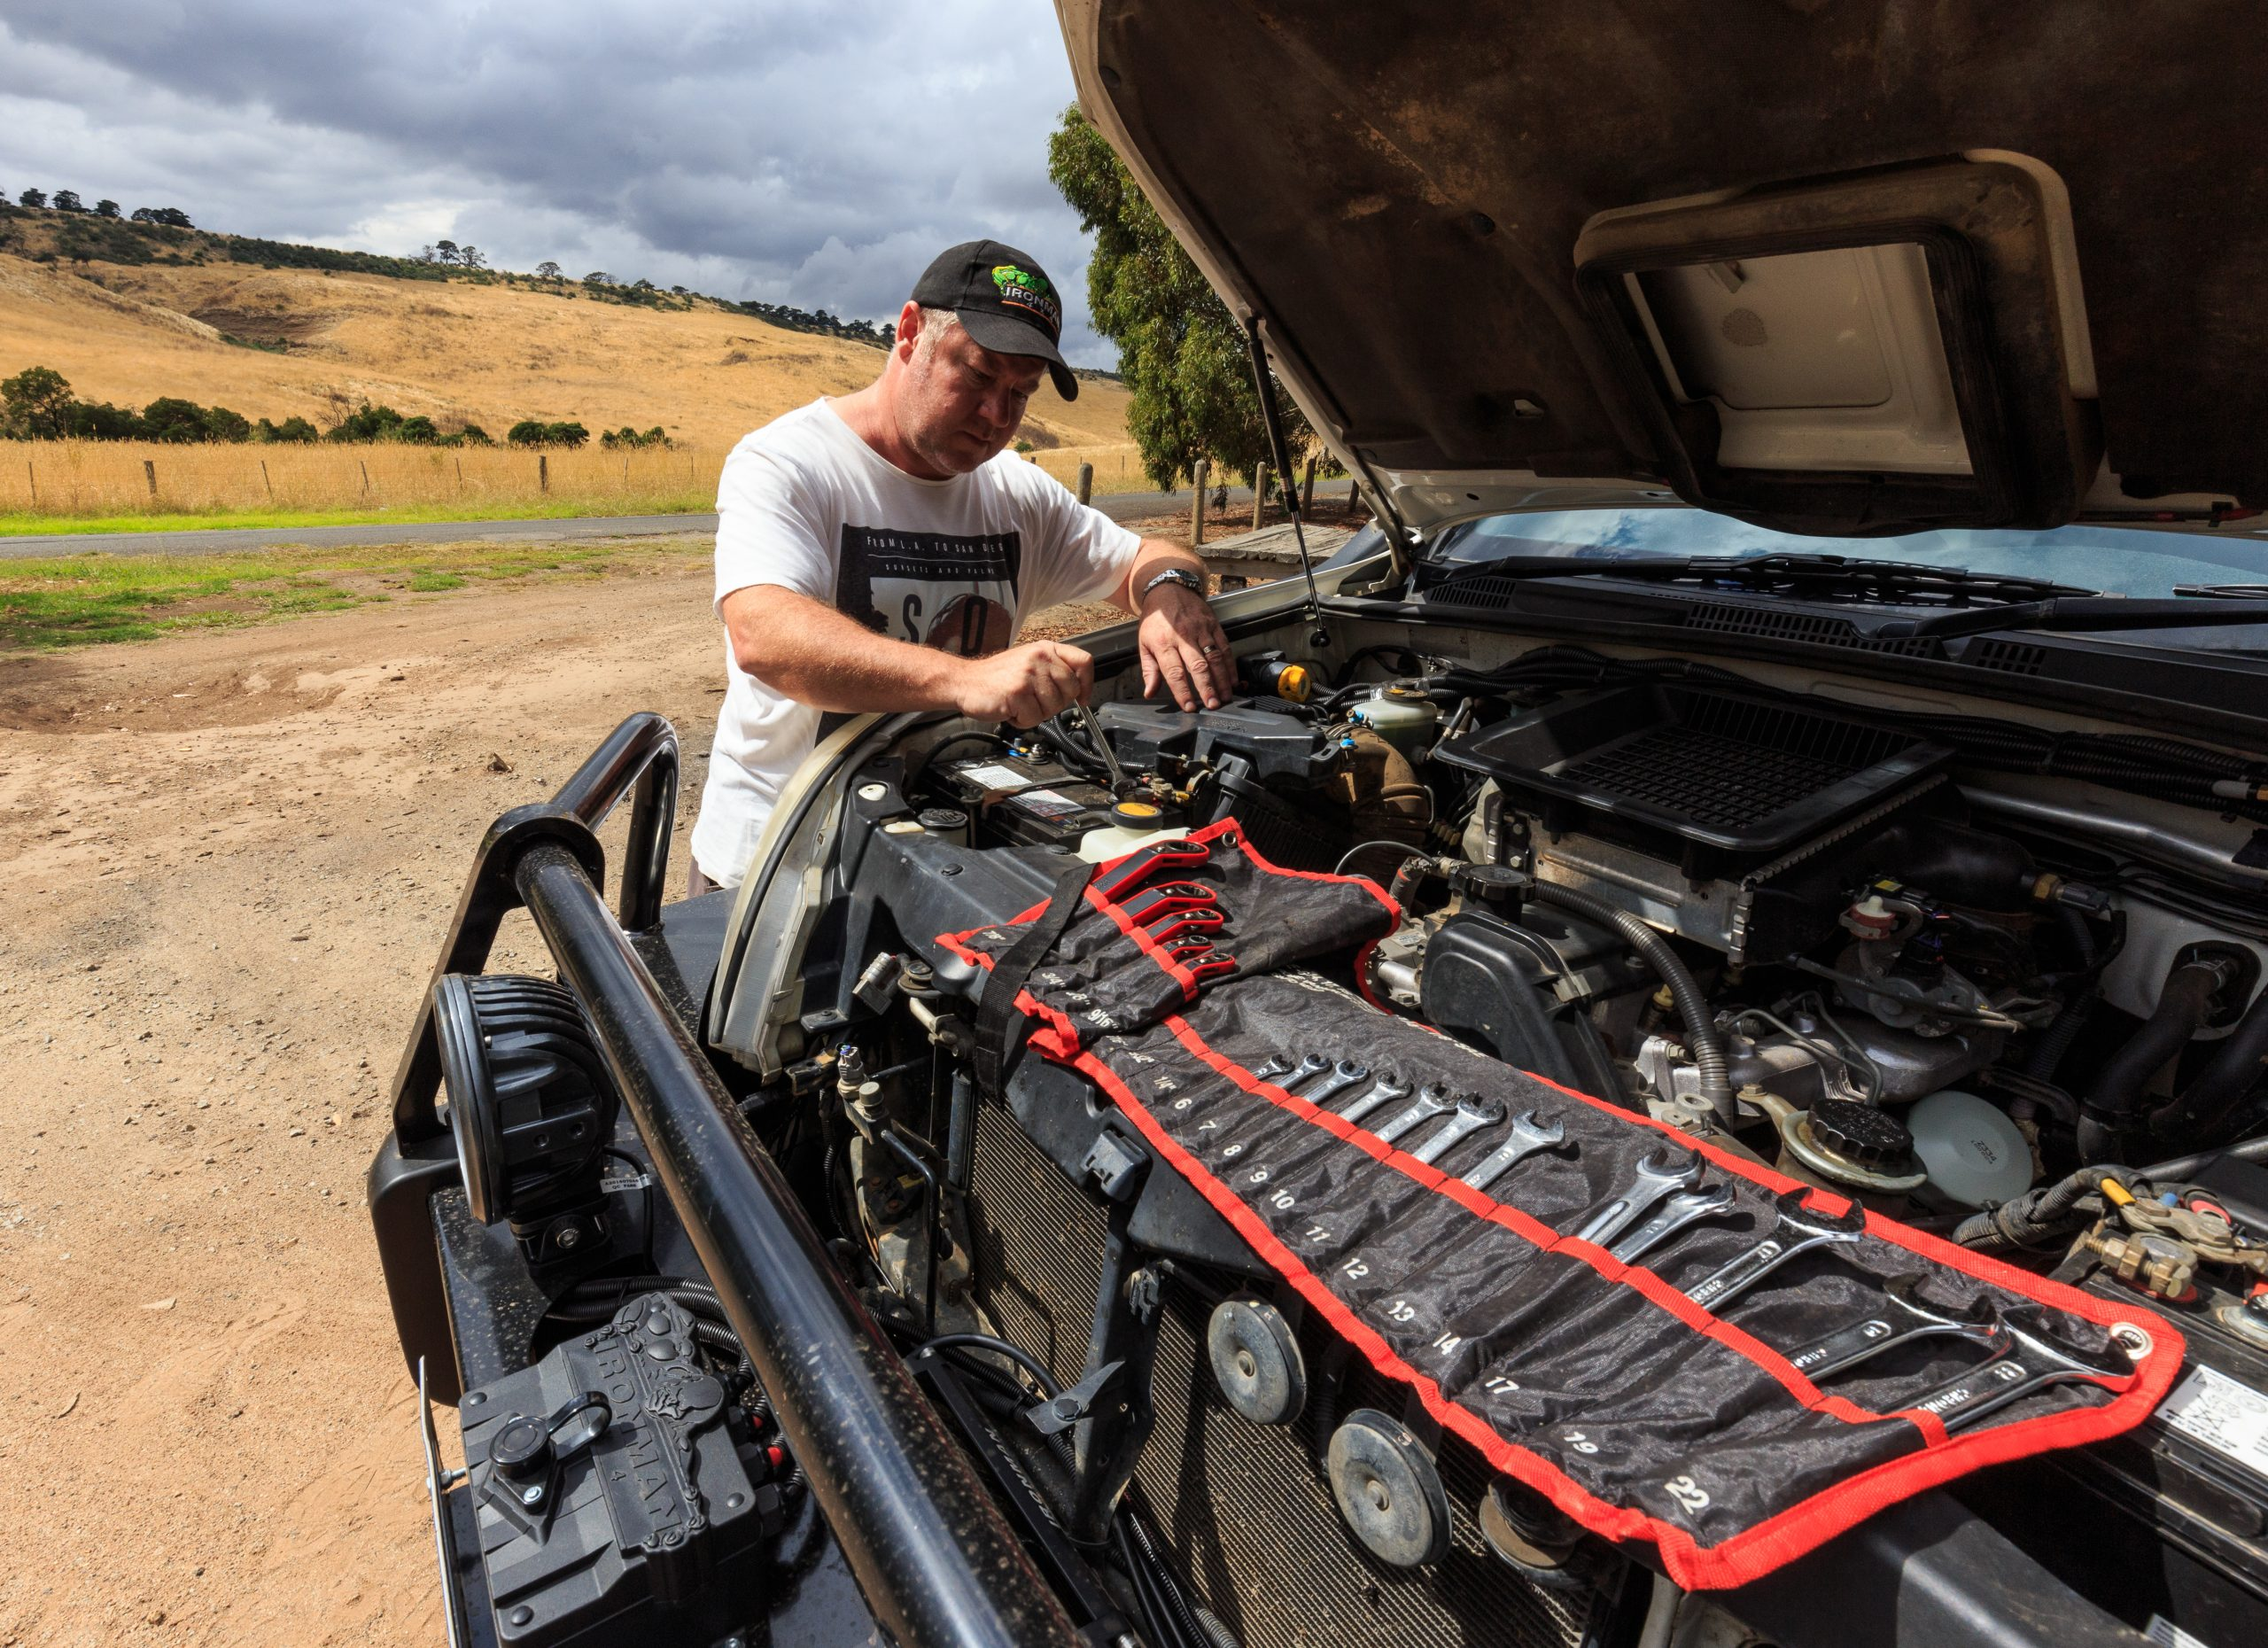 A spanner is an RV essential tool